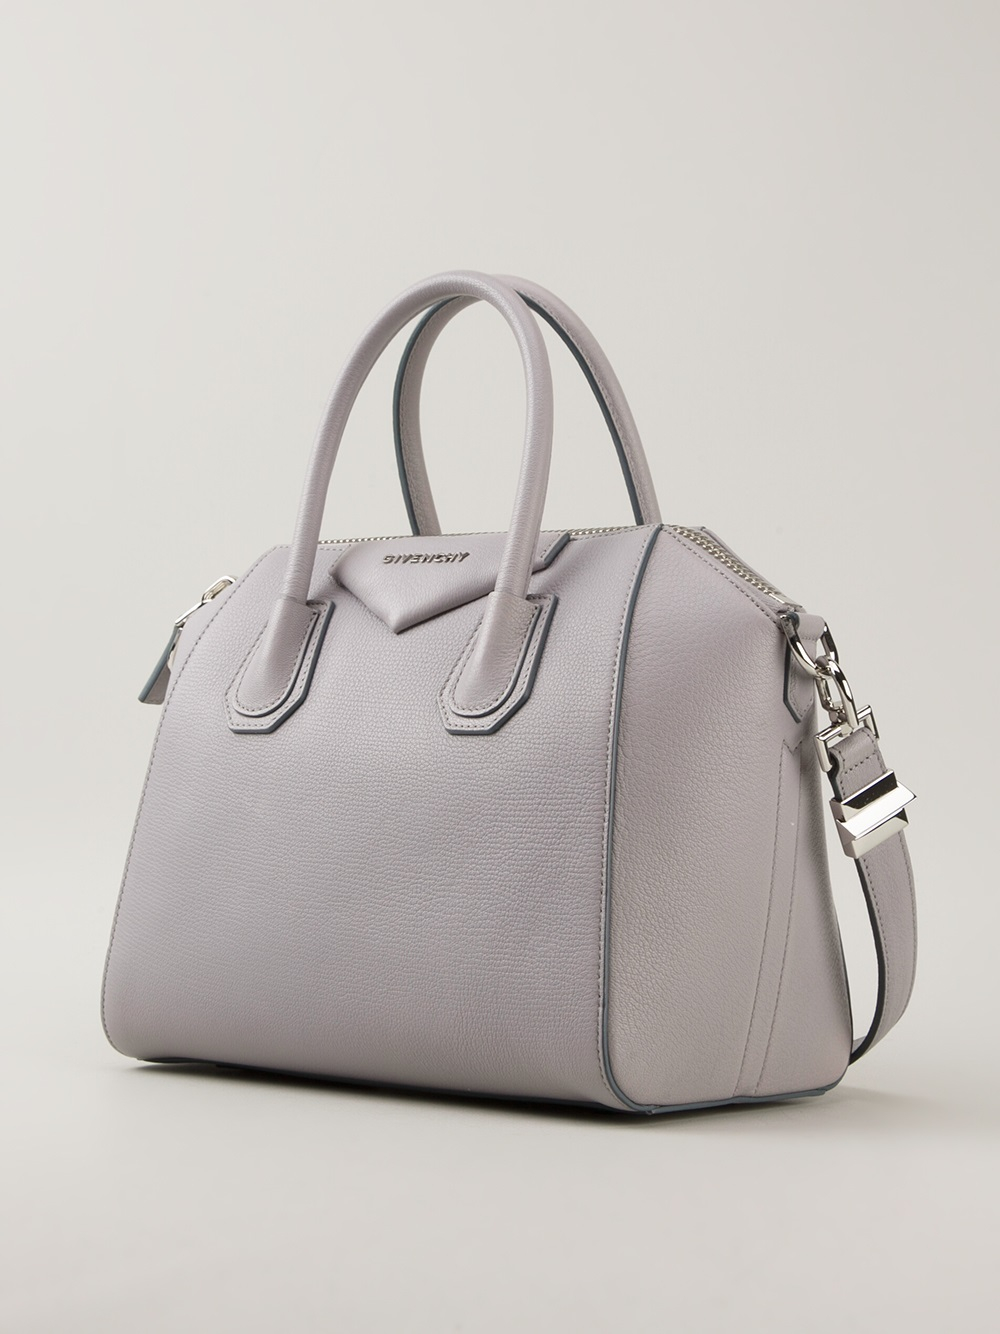 Photos Of Small Living Rooms Decorated: Givenchy Antigona Small Tote In Gray